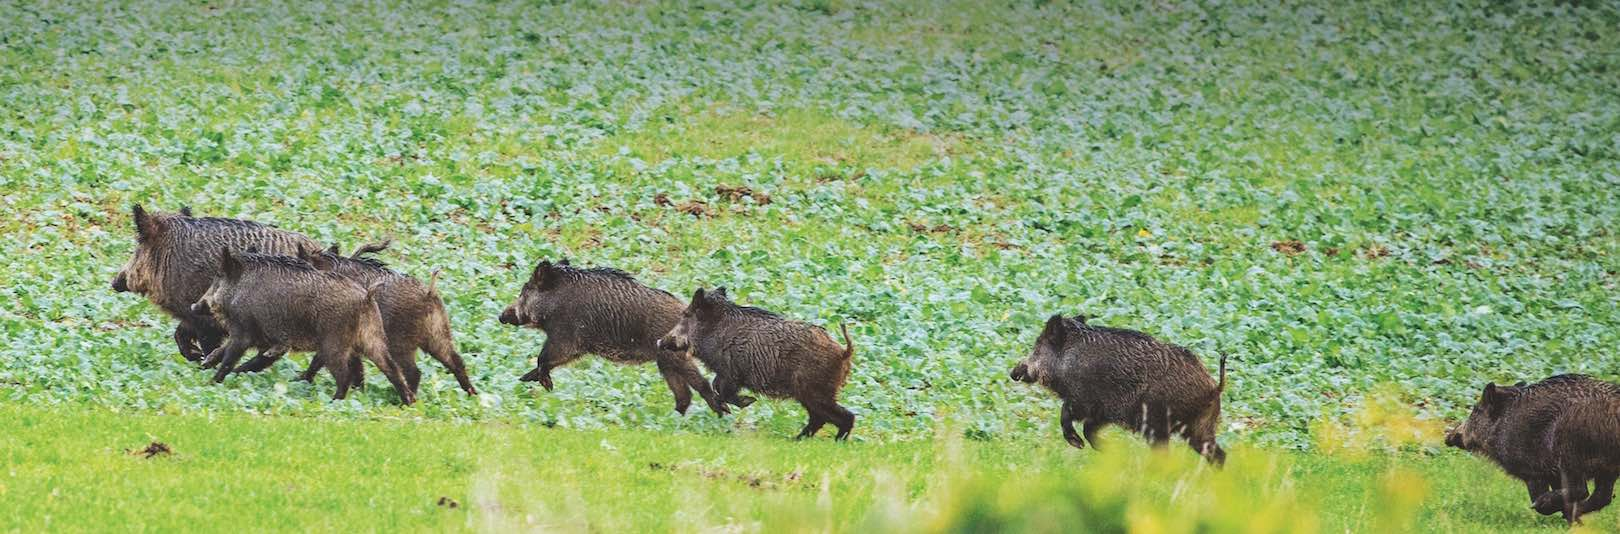 Wild boar hunting is organised for sustainable-use conservation by Sybarite Sporting, game shooting